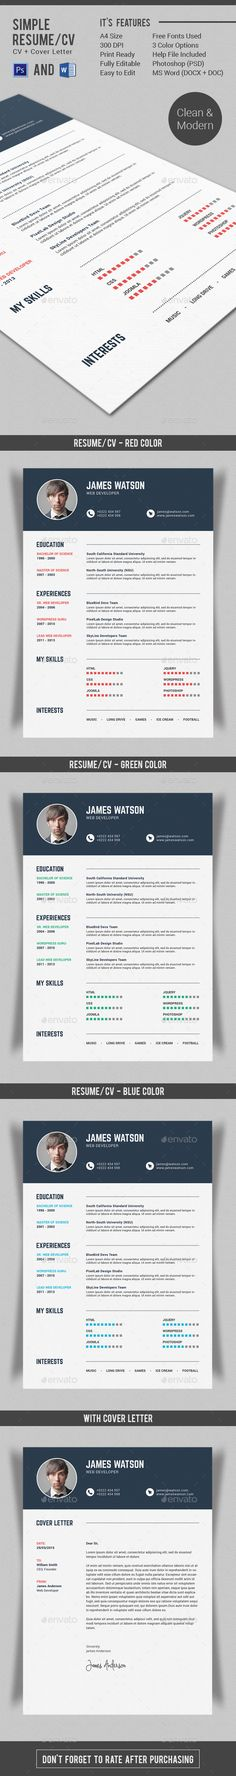 Simple Resume Template Simple, Simple resume template and Resume - easy simple resume template